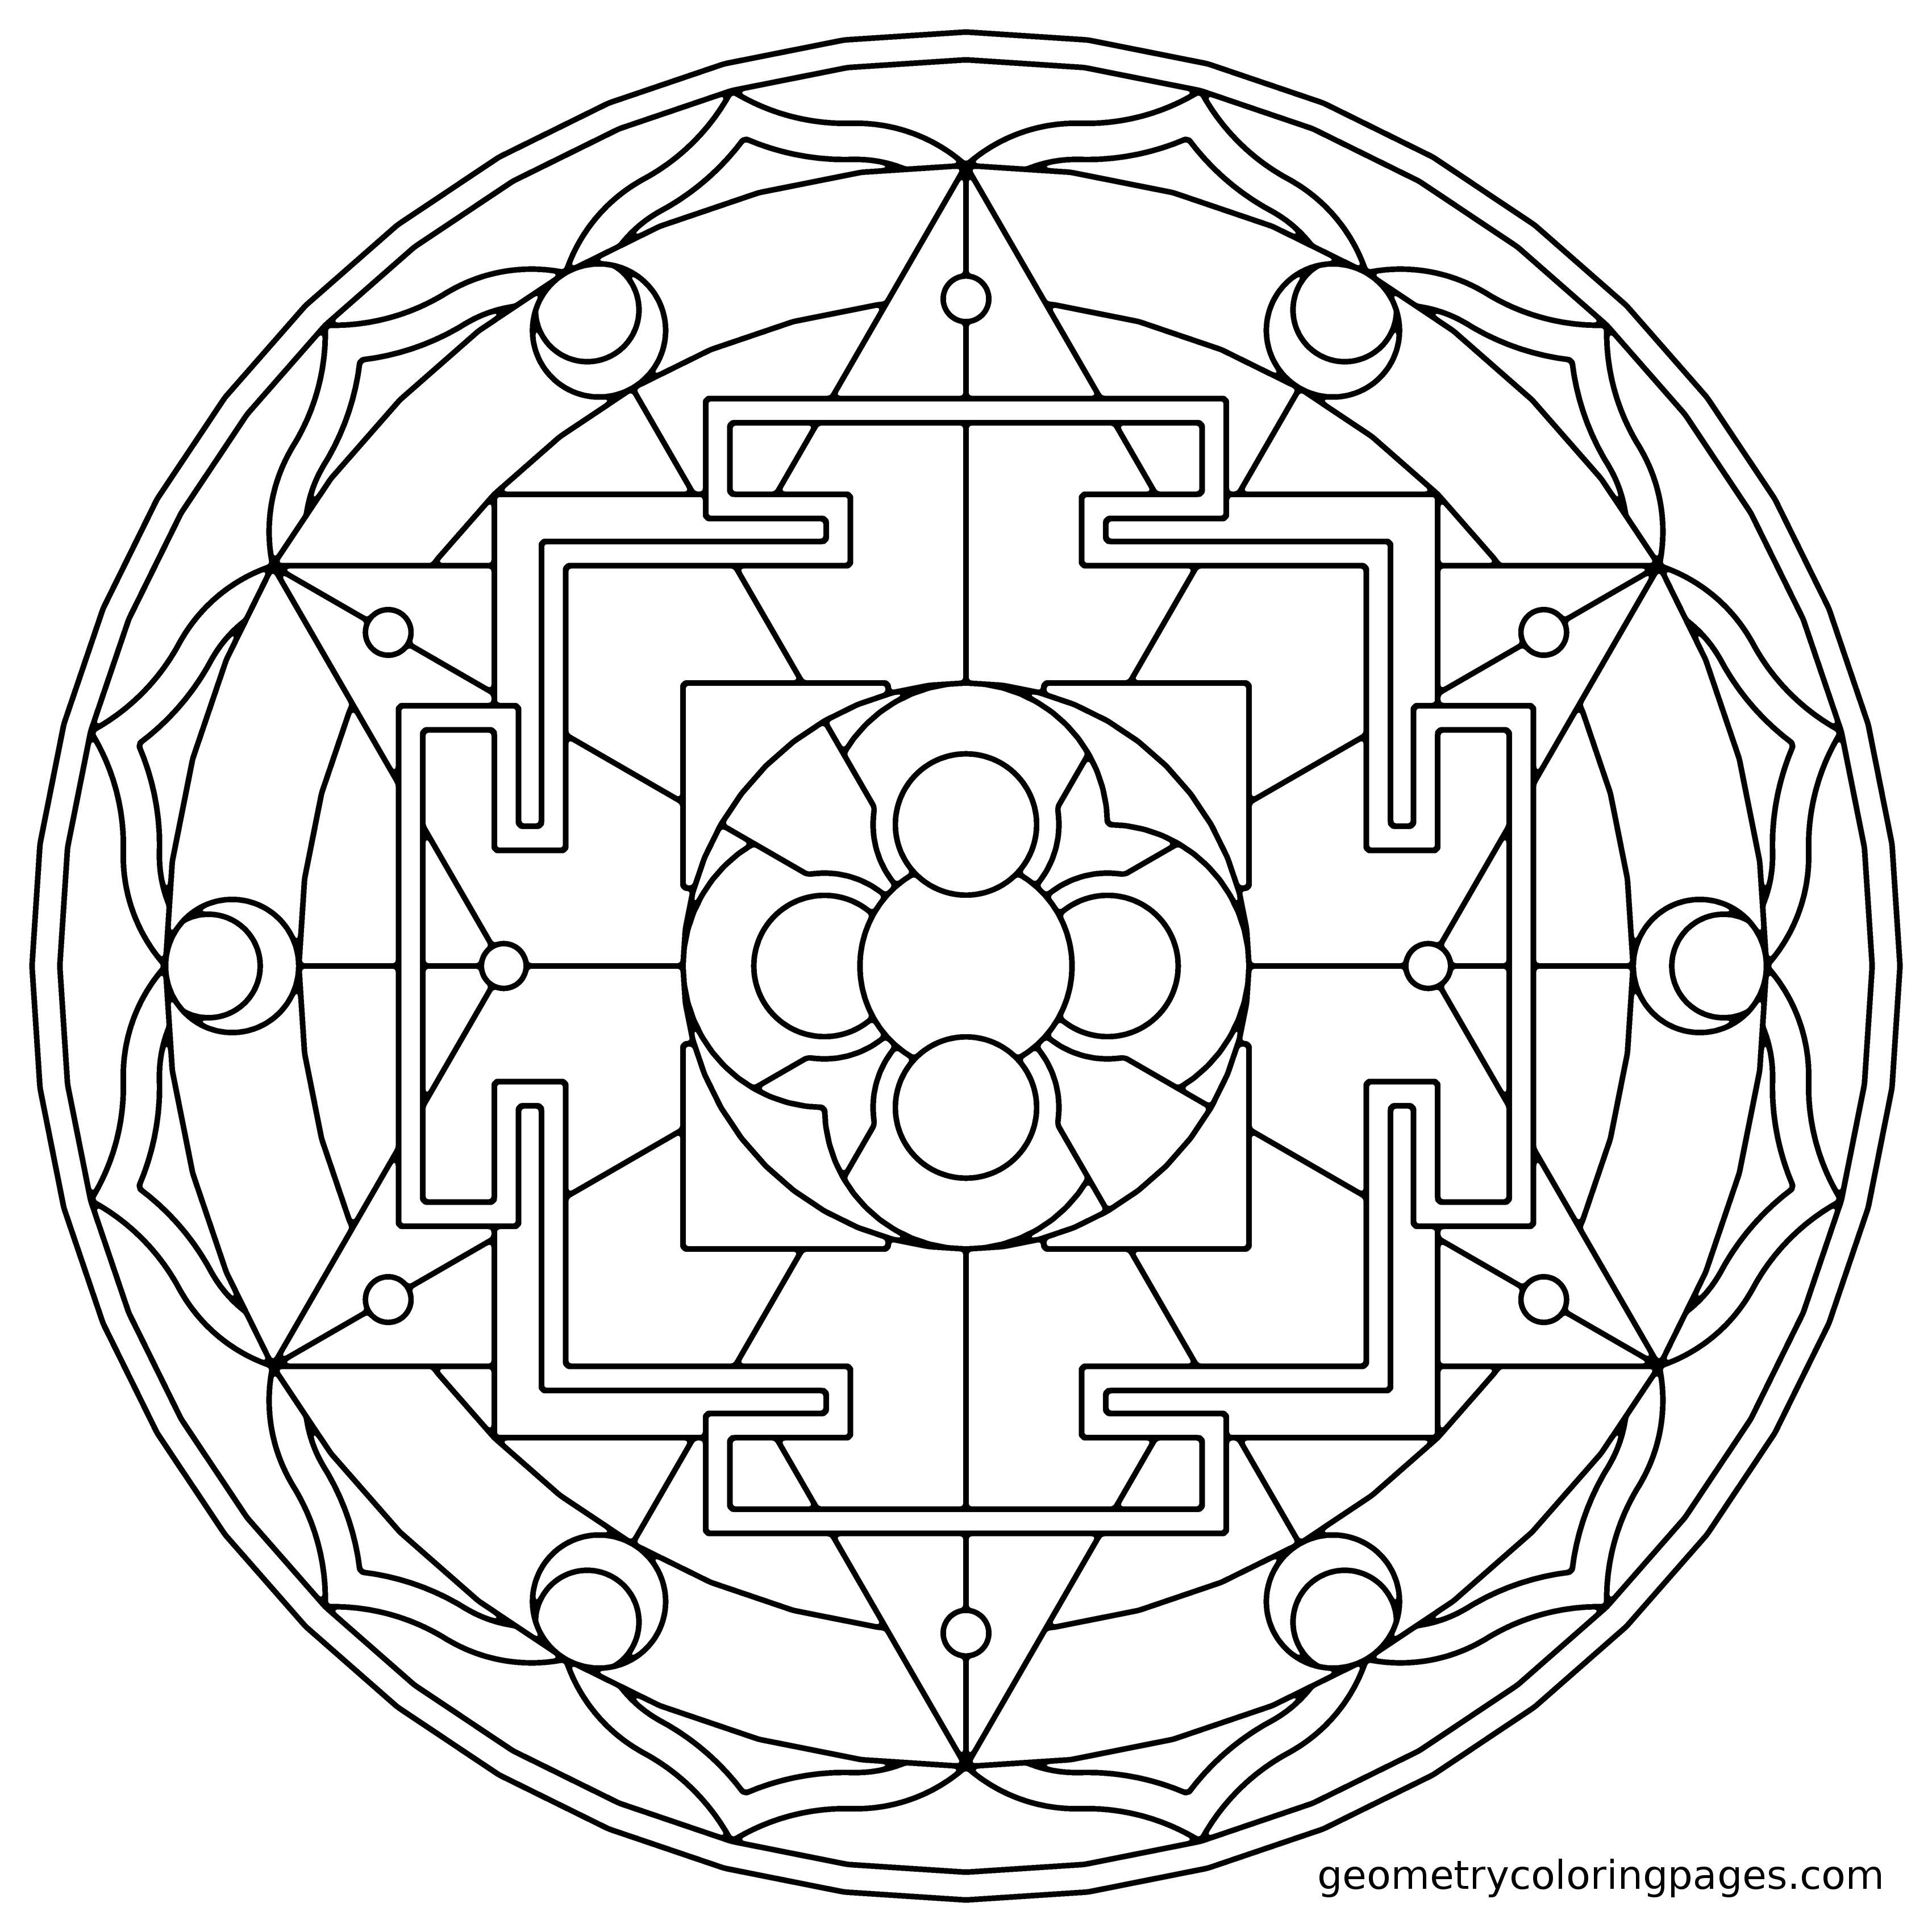 Mandala Coloring Page, Sacred Rooms from geometrycoloringpages.com ...